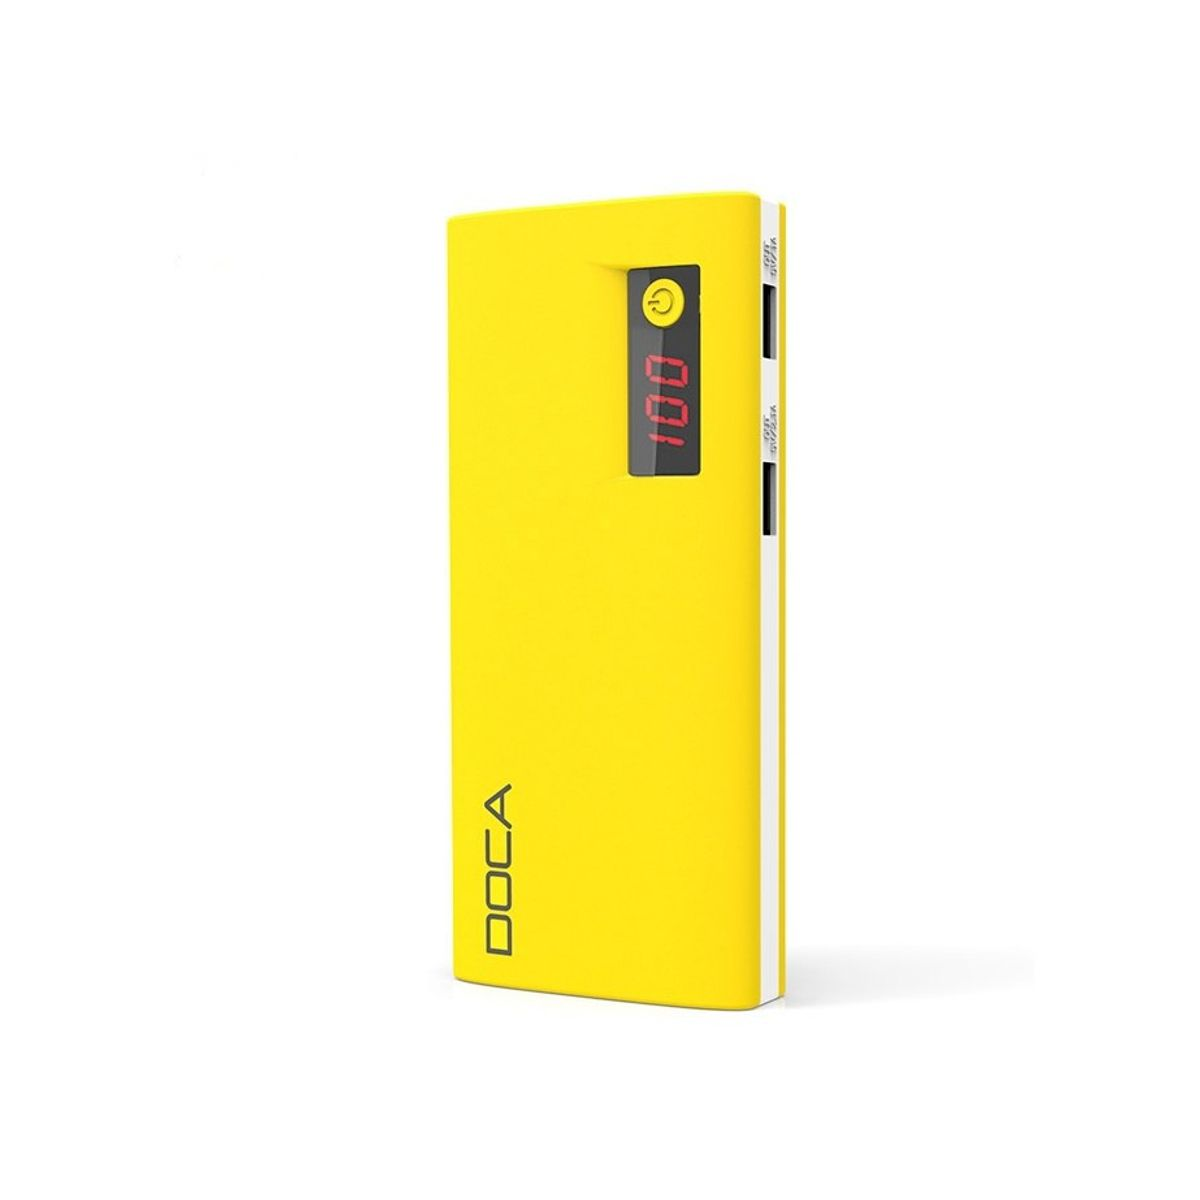 DOCA 13.000mAh USB-C Power Bank Gul, Qualcomm Quick Charge 3.0 (D566BC-YELLOW)